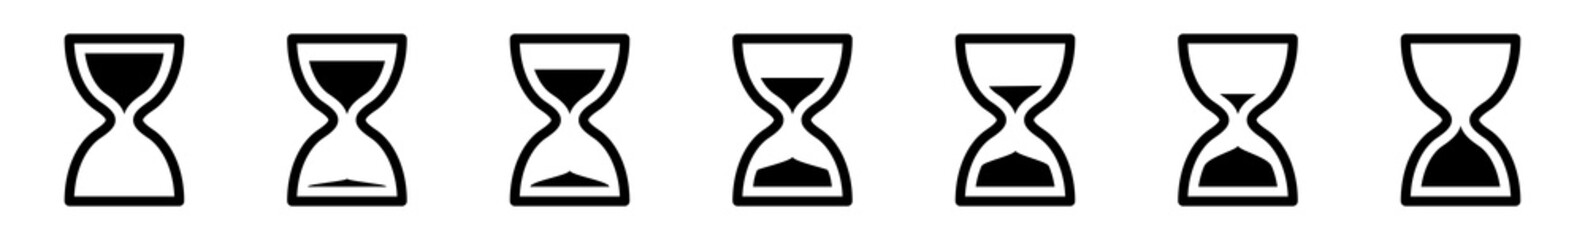 Hourglass Icon Black | Hourglasses | Time Symbol | Sandglass Logo | Clock Sign | Timer | Isolated | Variations